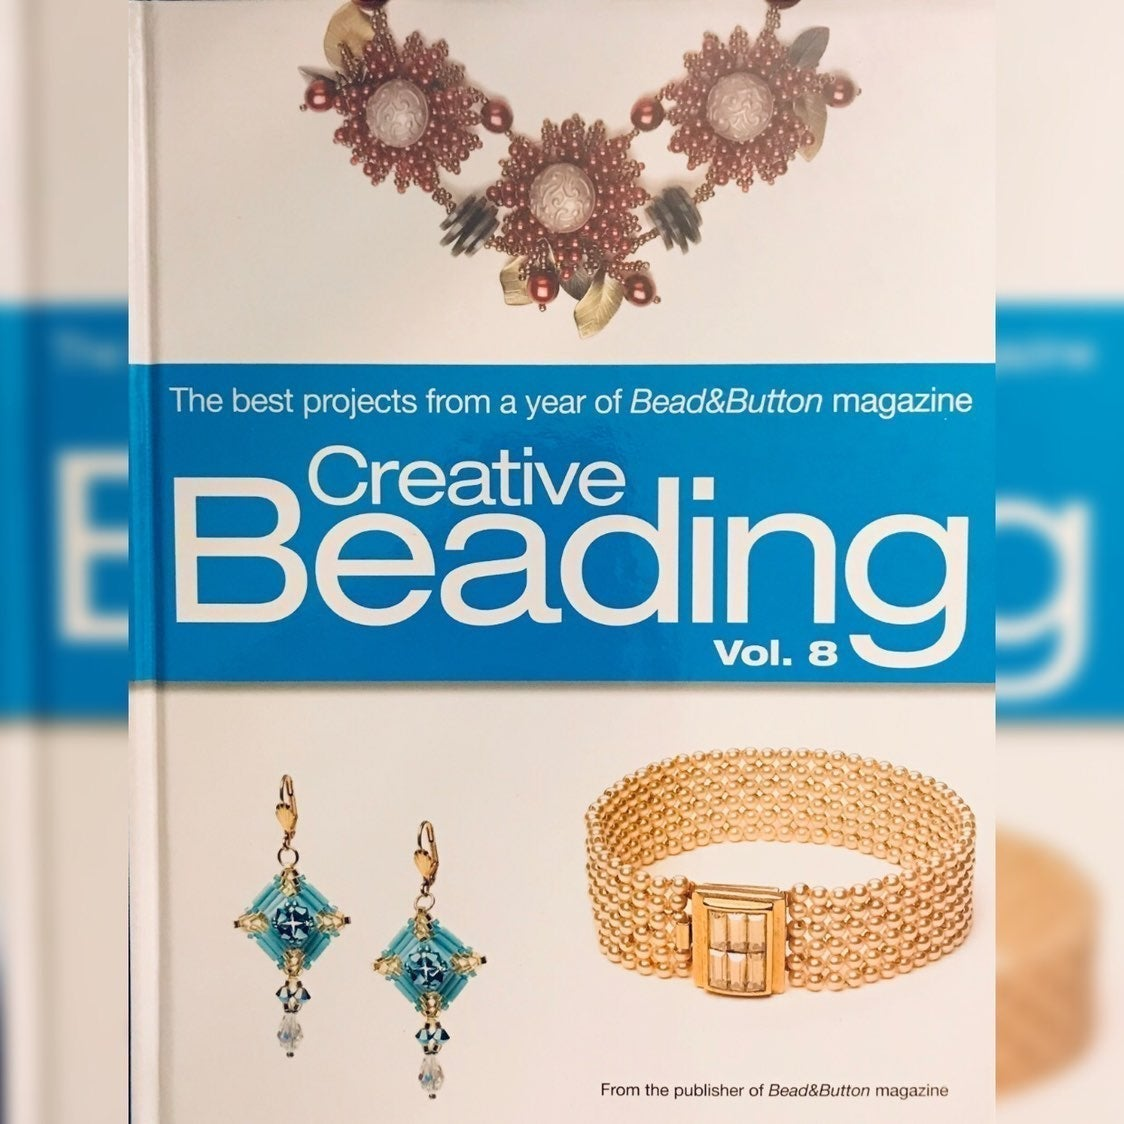 Creative Beading Vol. 8 best Projects